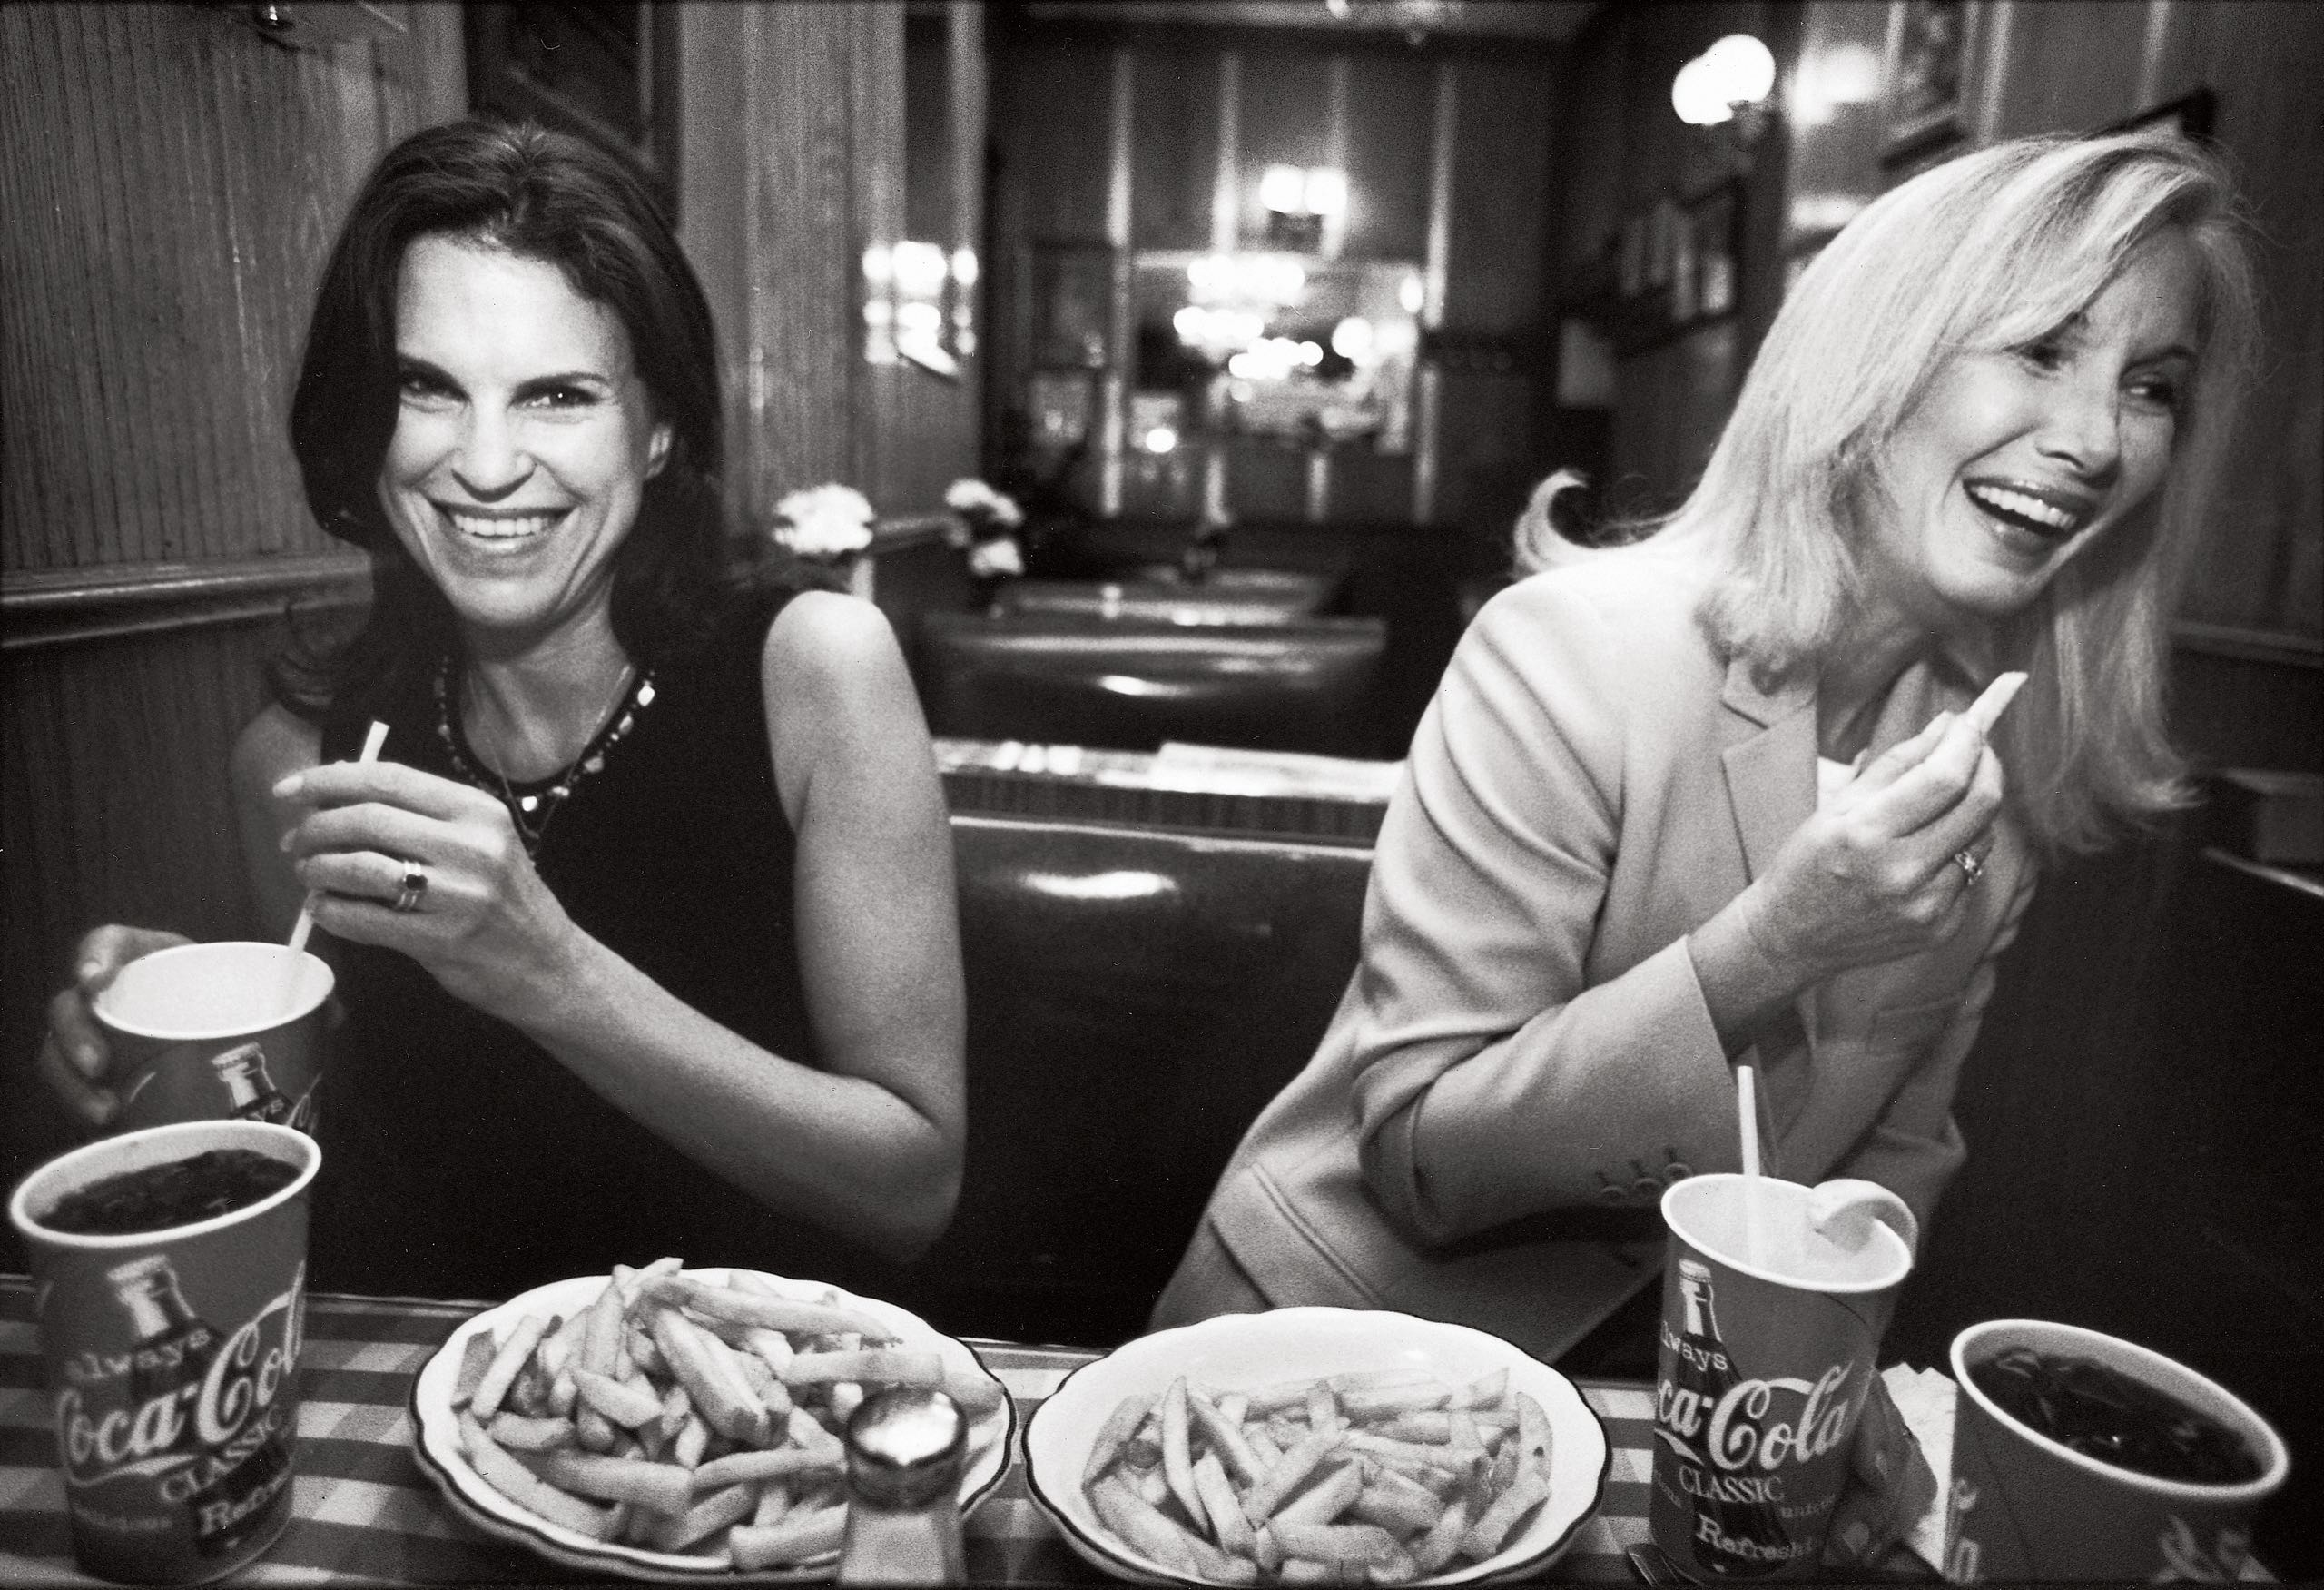 Candice Carpenter (left) and Nancy Evans (right). Image credit: The New Yorker